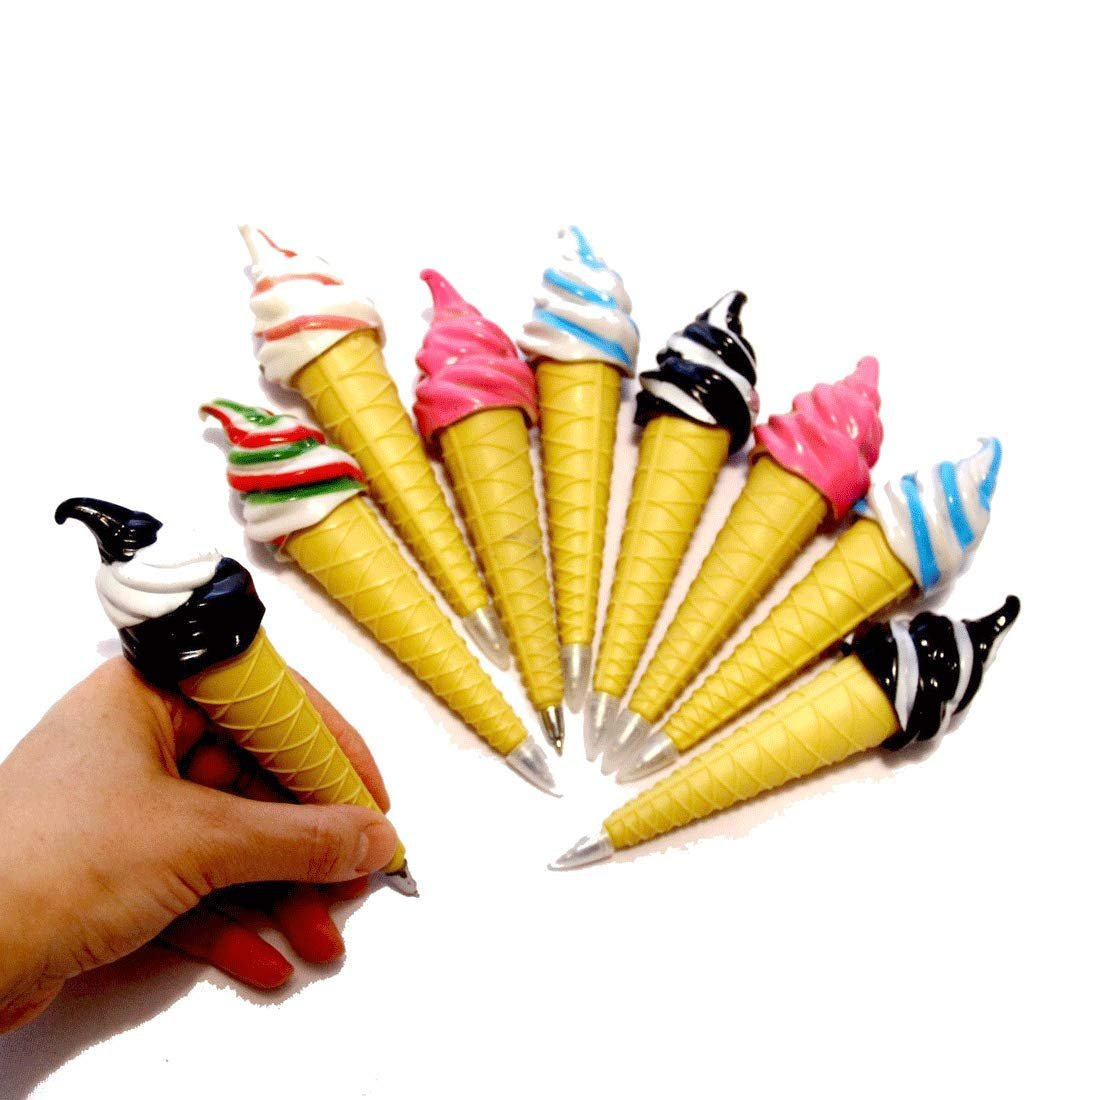 dazzling toys Assorted Magnetic Ice Cream Cone Writing Pens for Kids Pack of 6 - Cool Multicolor Pens for Kids Party Favor | Birthday Party Fun Novelty Pens 6 Pk. School Supplies for Ages 3 and Up